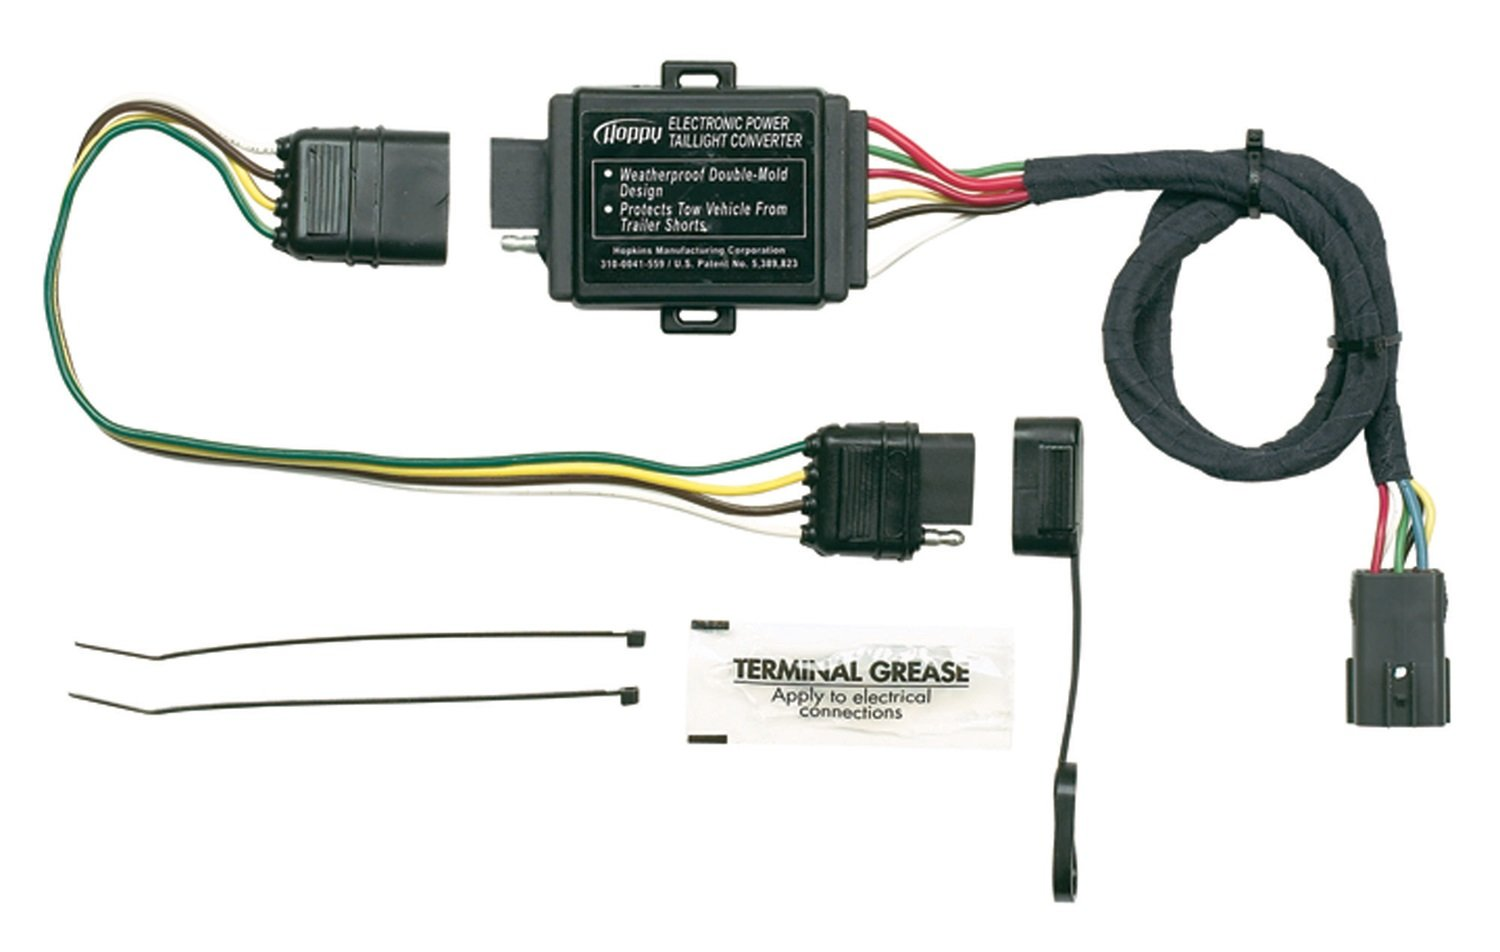 61dKvjPegbL._SL1500_ amazon com hopkins 11143875 plug in simple vehicle to trailer hoppy wiring harness at crackthecode.co